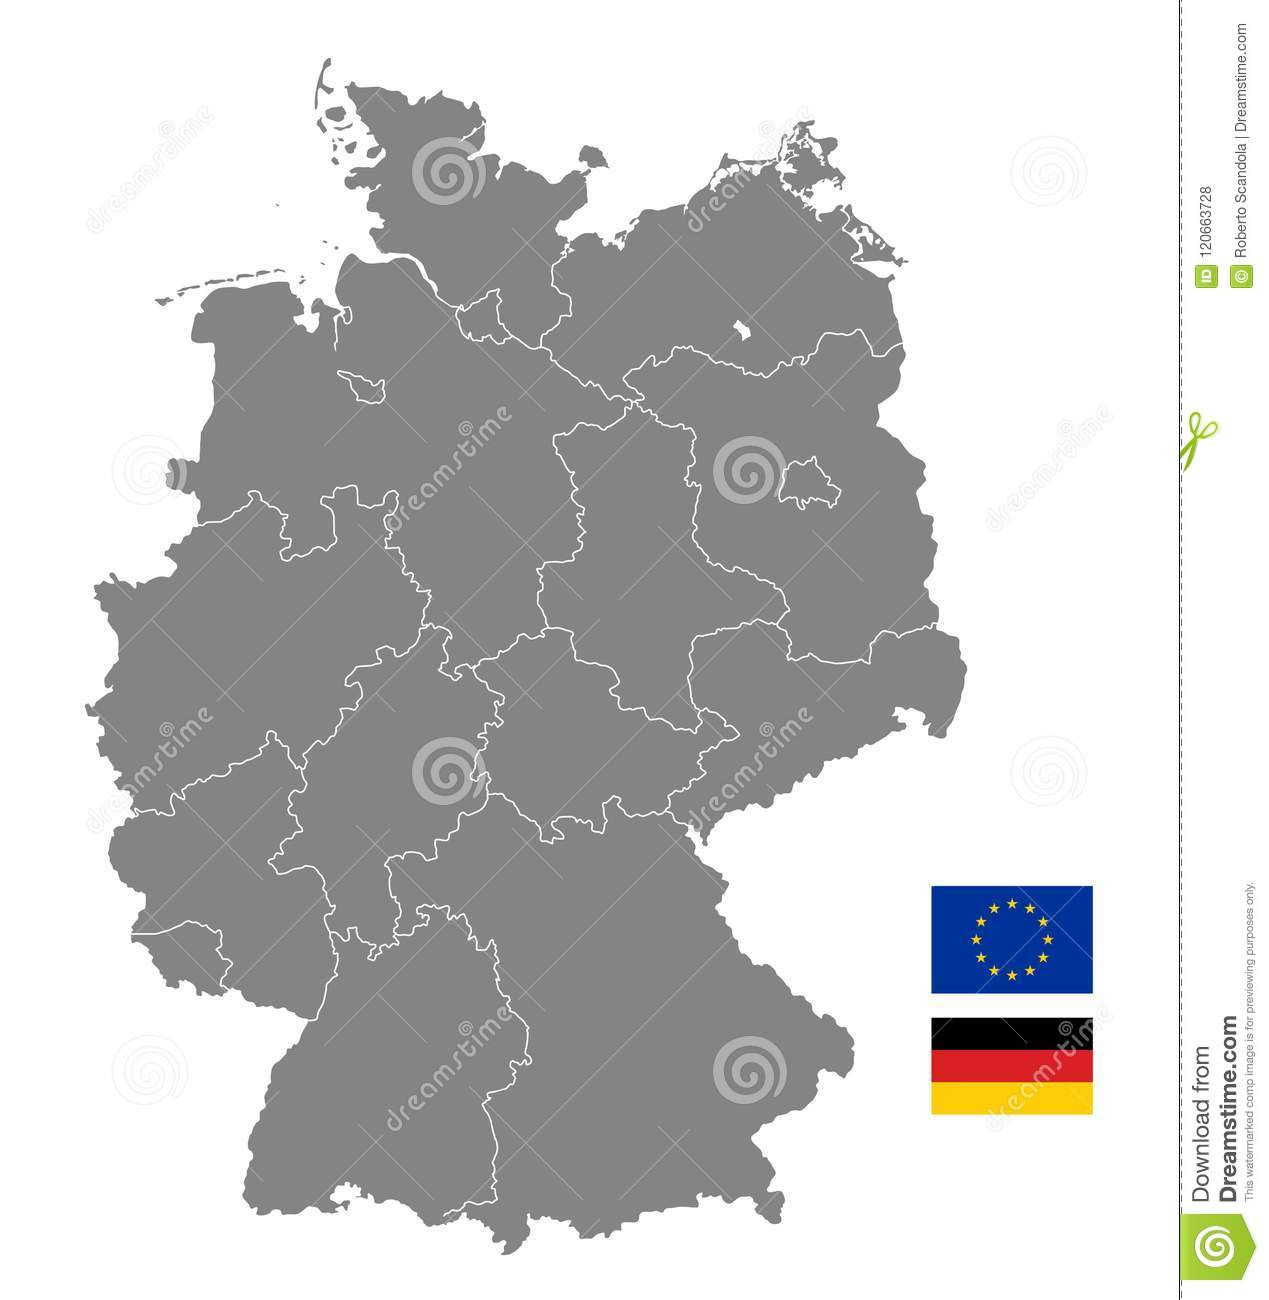 Grey Vector Political Map Of Germany Stock Vector ... on geographical map of germany, geographic map of germany, regional map of germany, social map of germany, geological map of germany, physiological map of germany, strategic map of germany, topological map of germany, industrial map of germany, linguistic map of germany, tactical map of germany, topographical map of germany, operational map of germany, religious map of germany, language map of germany, ethnic map of germany, commodities map of germany, fiscal map of germany, global map of germany, economic map of germany,